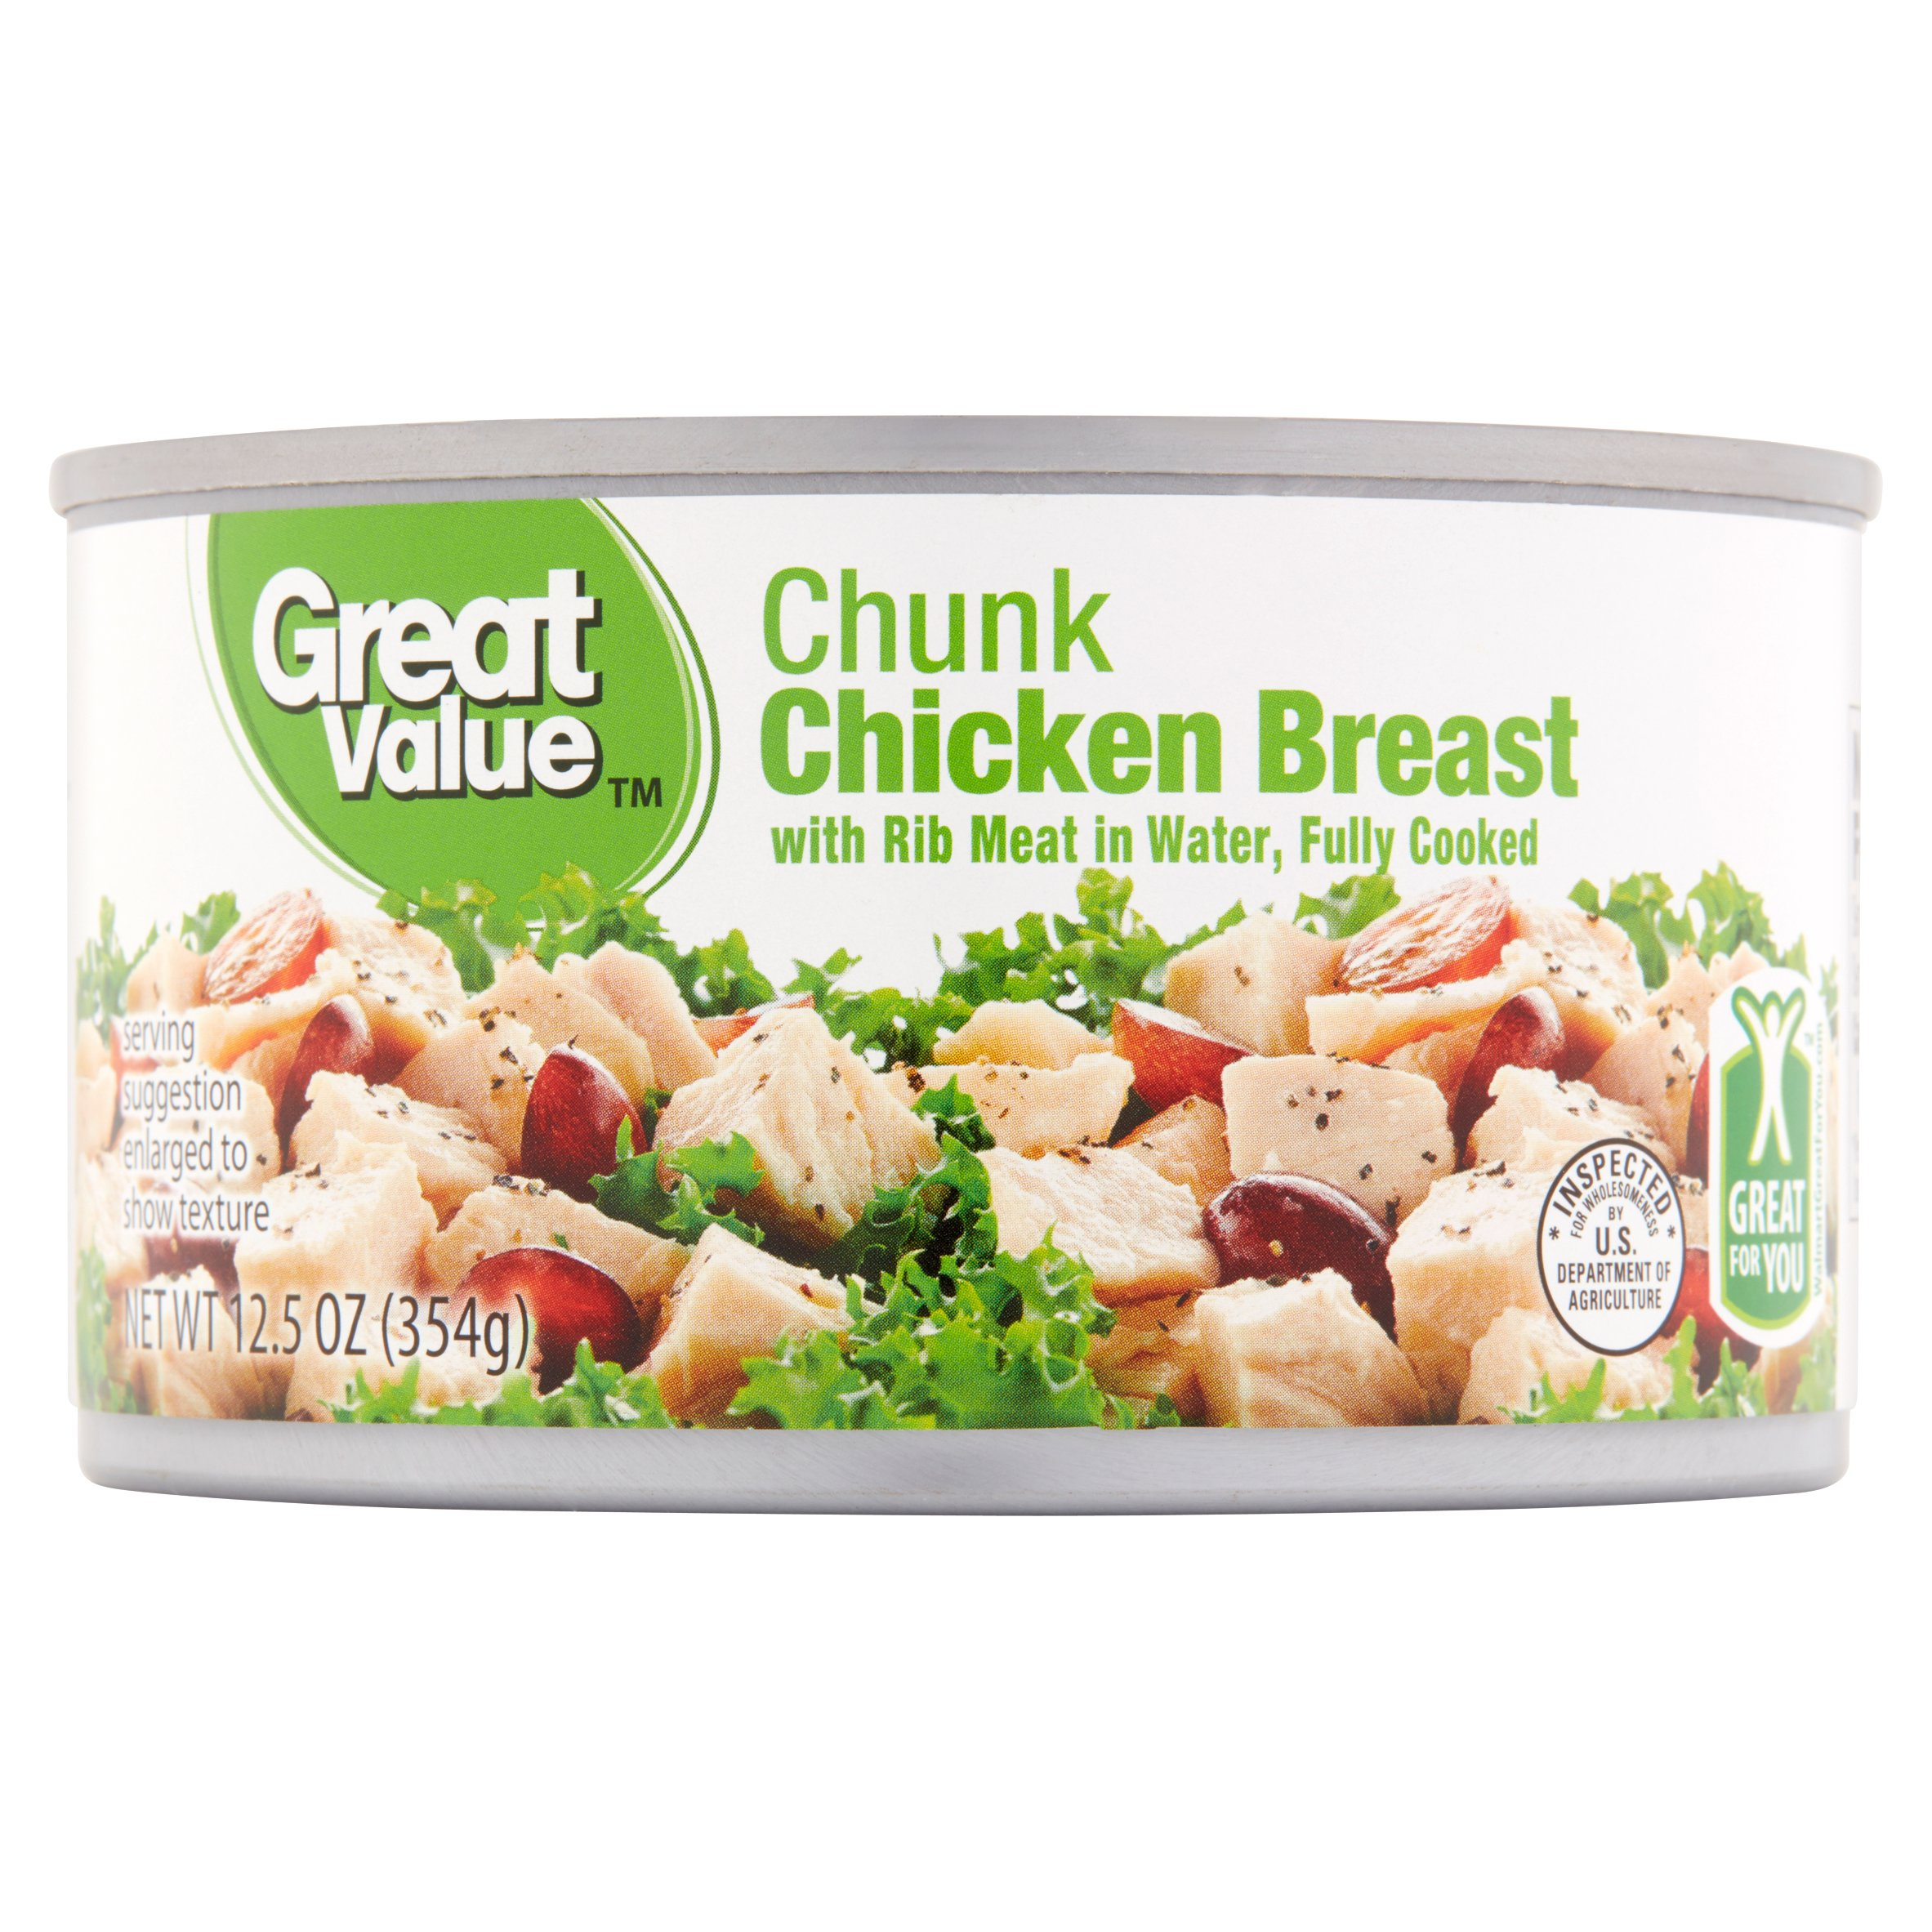 Great Value Premium Fully Cooked Chunk Chicken, 12.5 oz